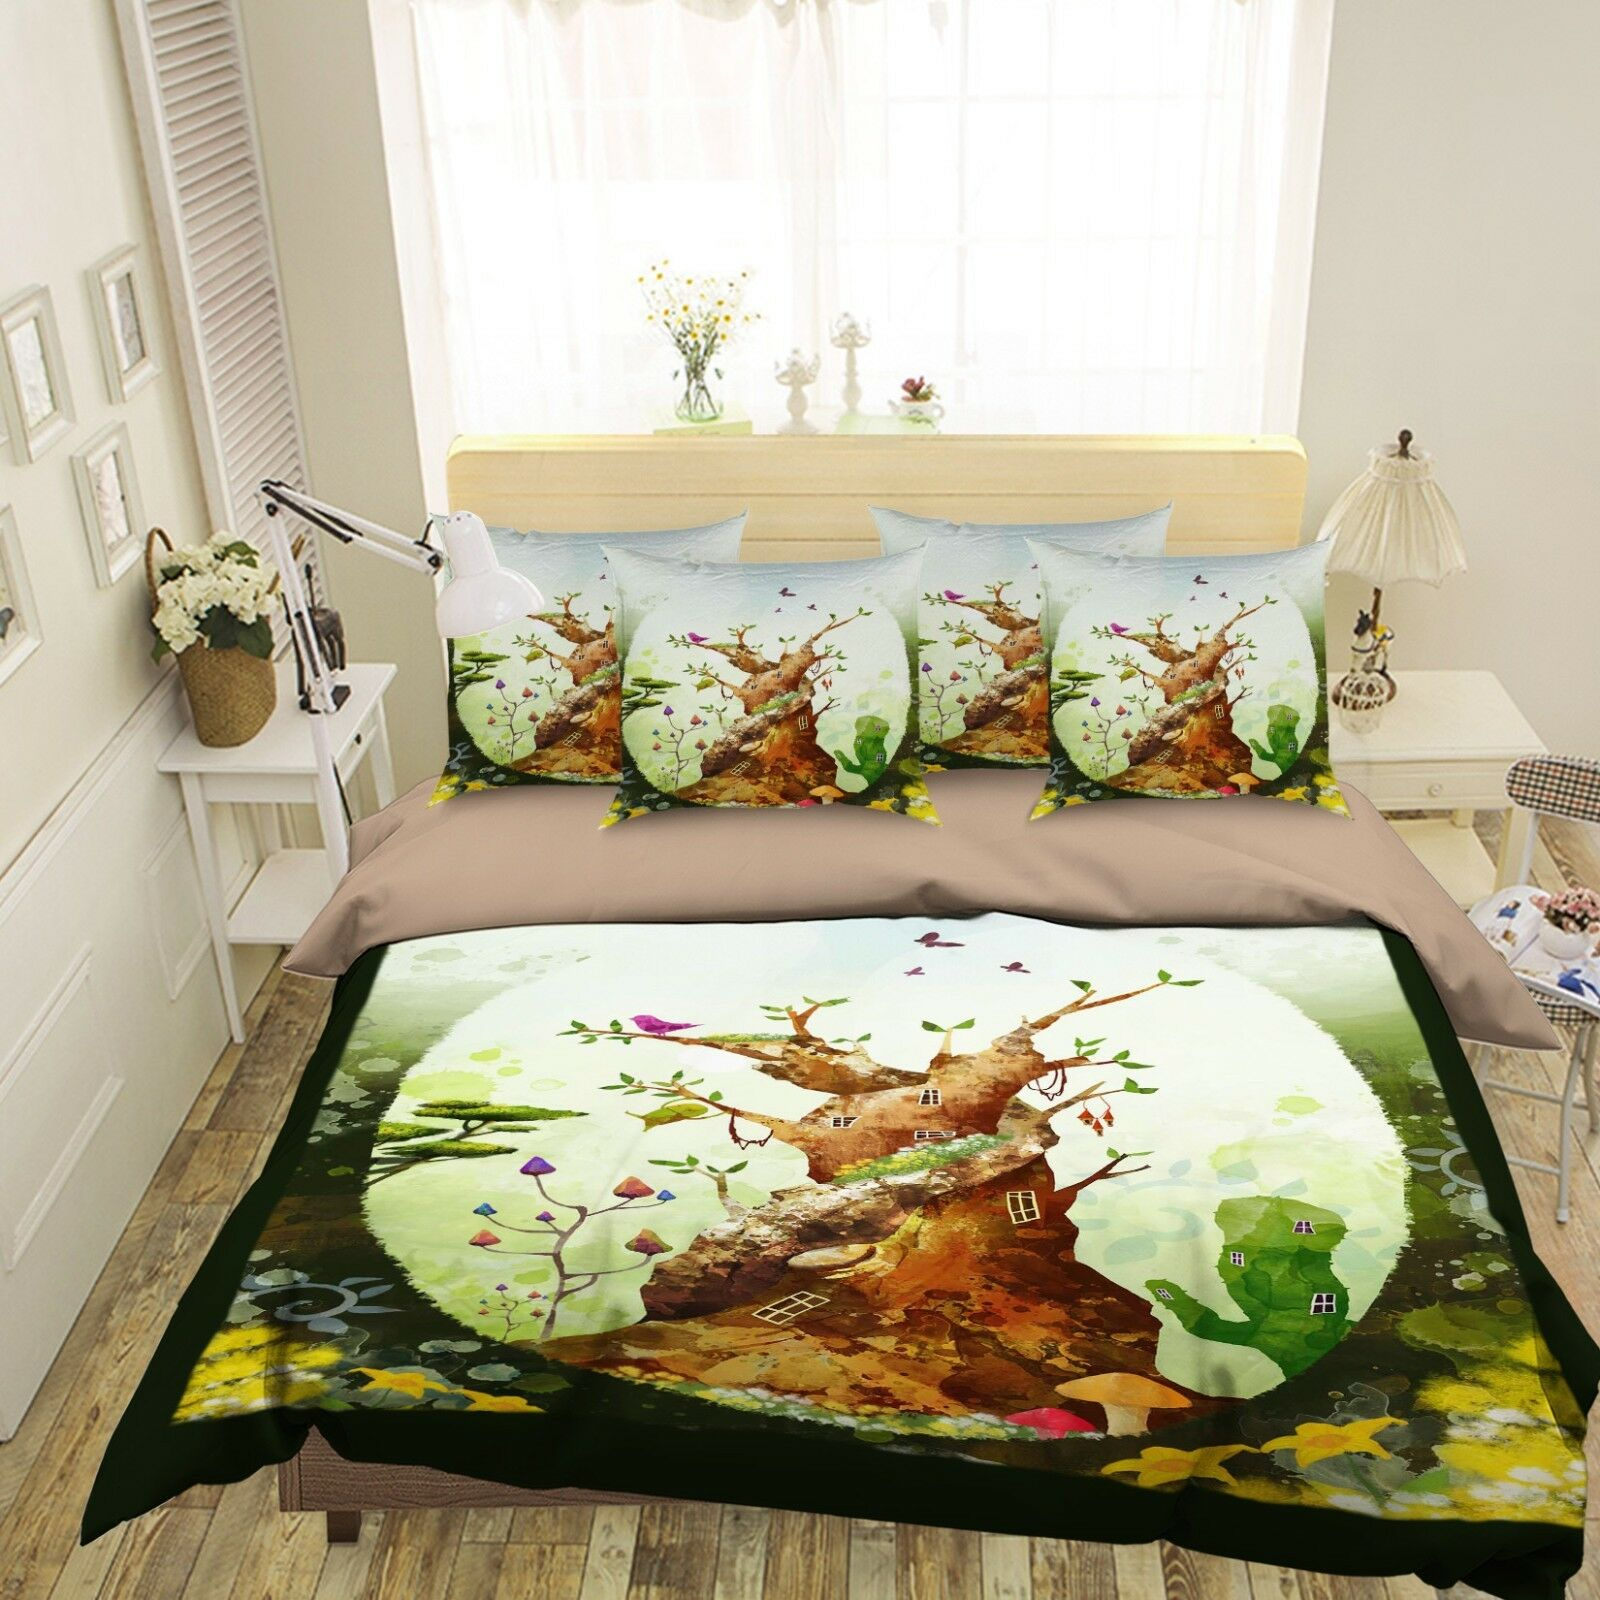 3D Tree House 59 Bed Pillowcases Quilt Duvet Cover Set Single Queen King AU Cobb